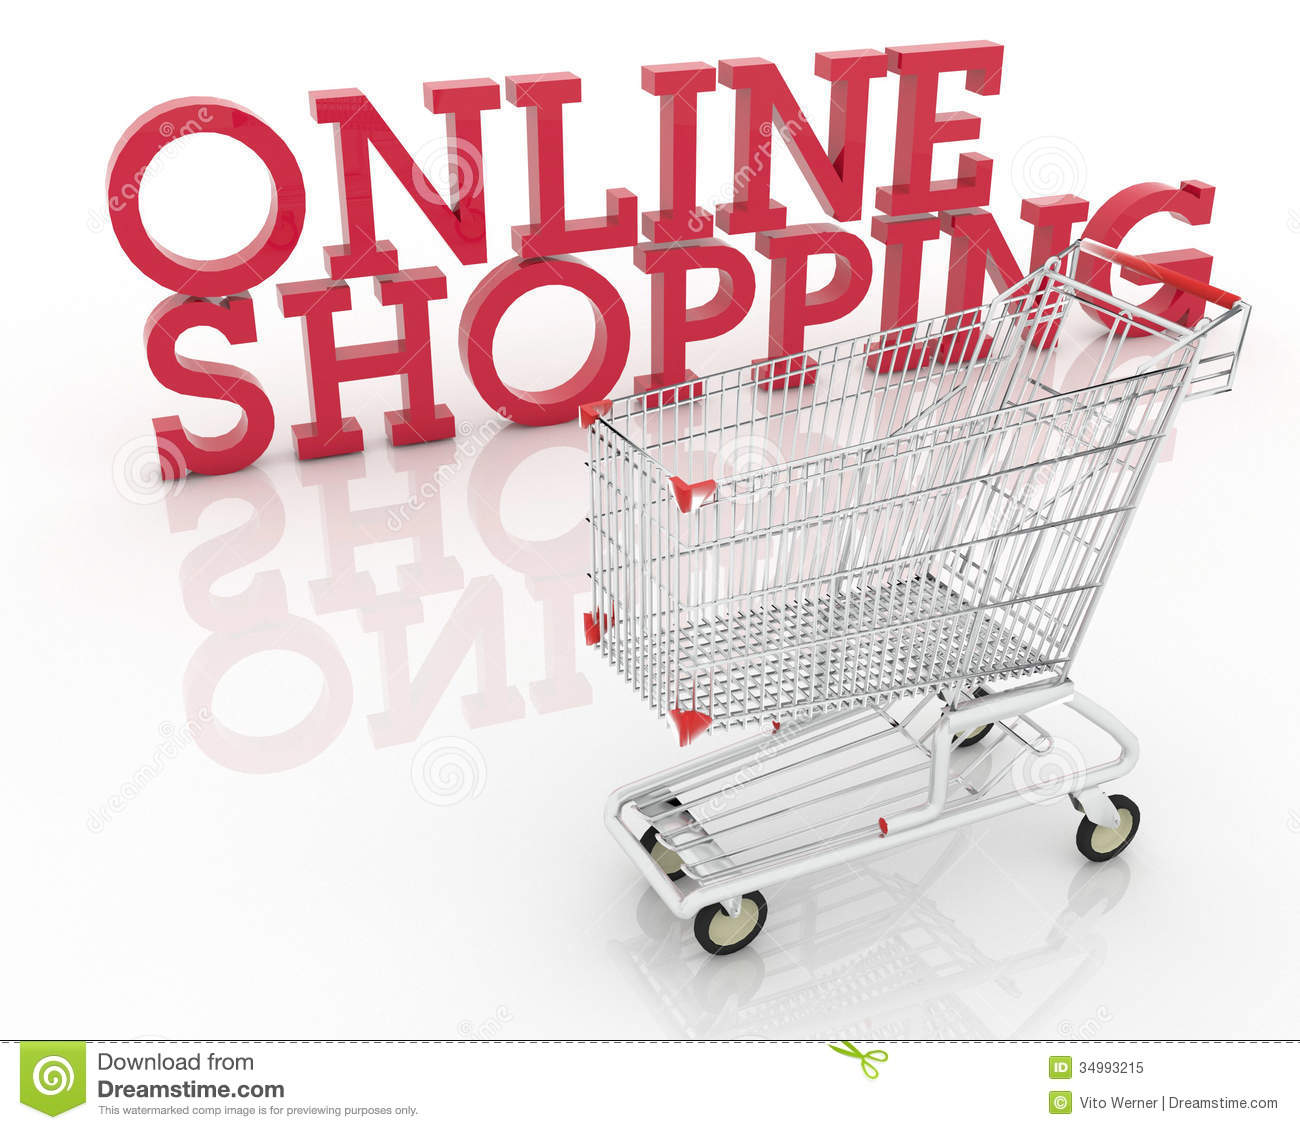 Free Stock Photos Online Online shopping